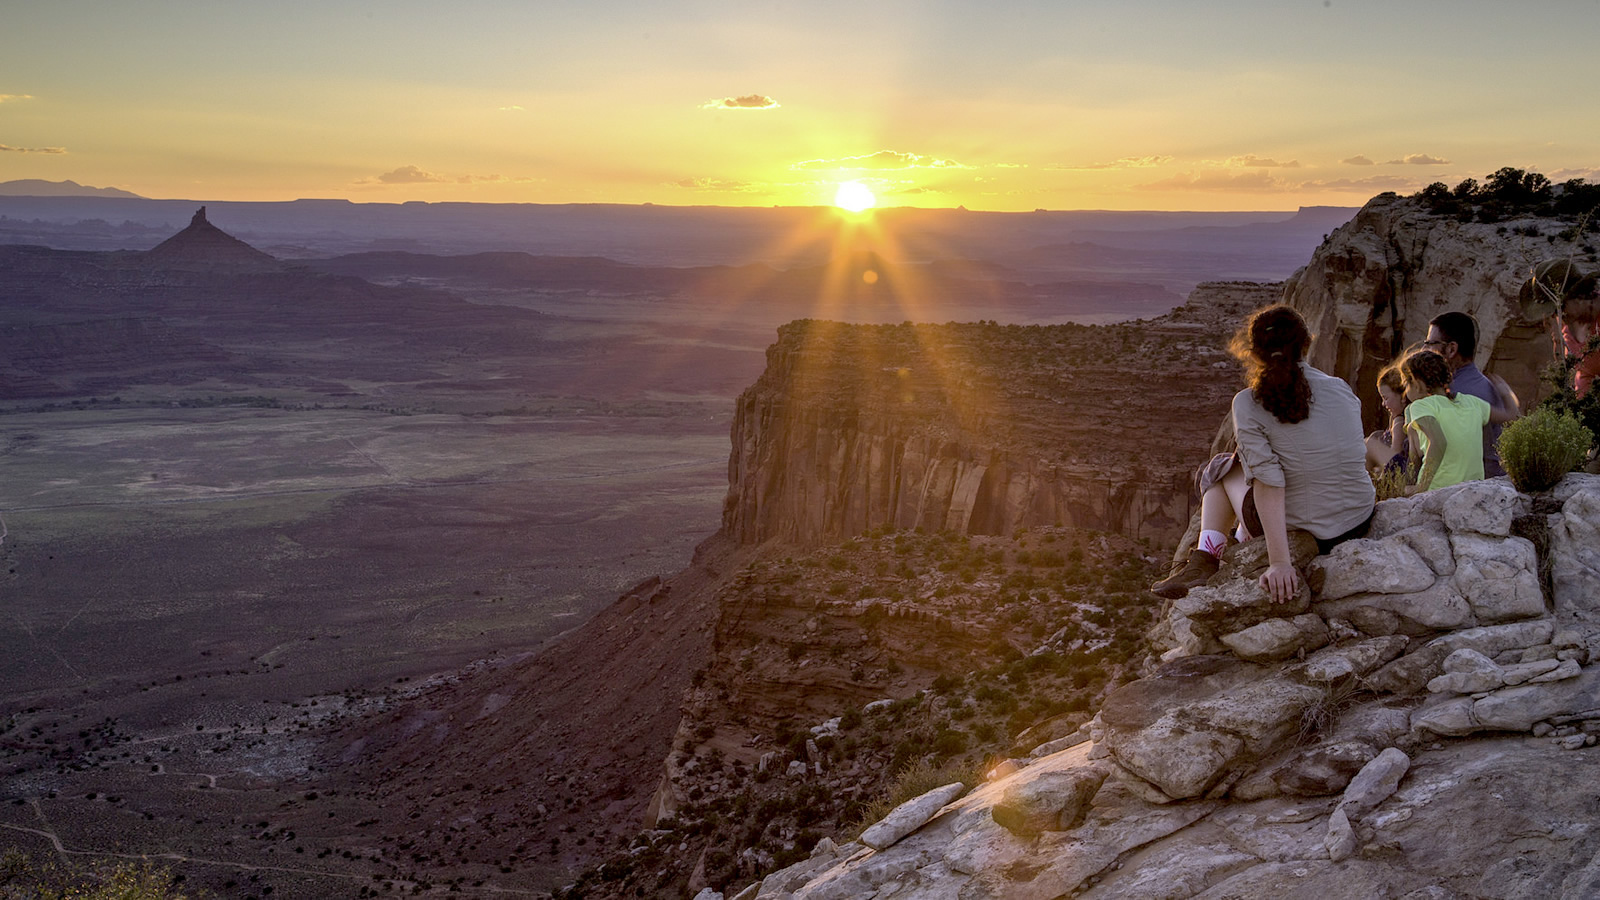 <h4>ENVIRONMENTAL DEFENSE: OUR PUBLIC LANDS</h4><h5>Goal: We need to defend our national monuments and other public lands from attempts to remove their protections.</h5><em>Bob Wick / BLM</em>